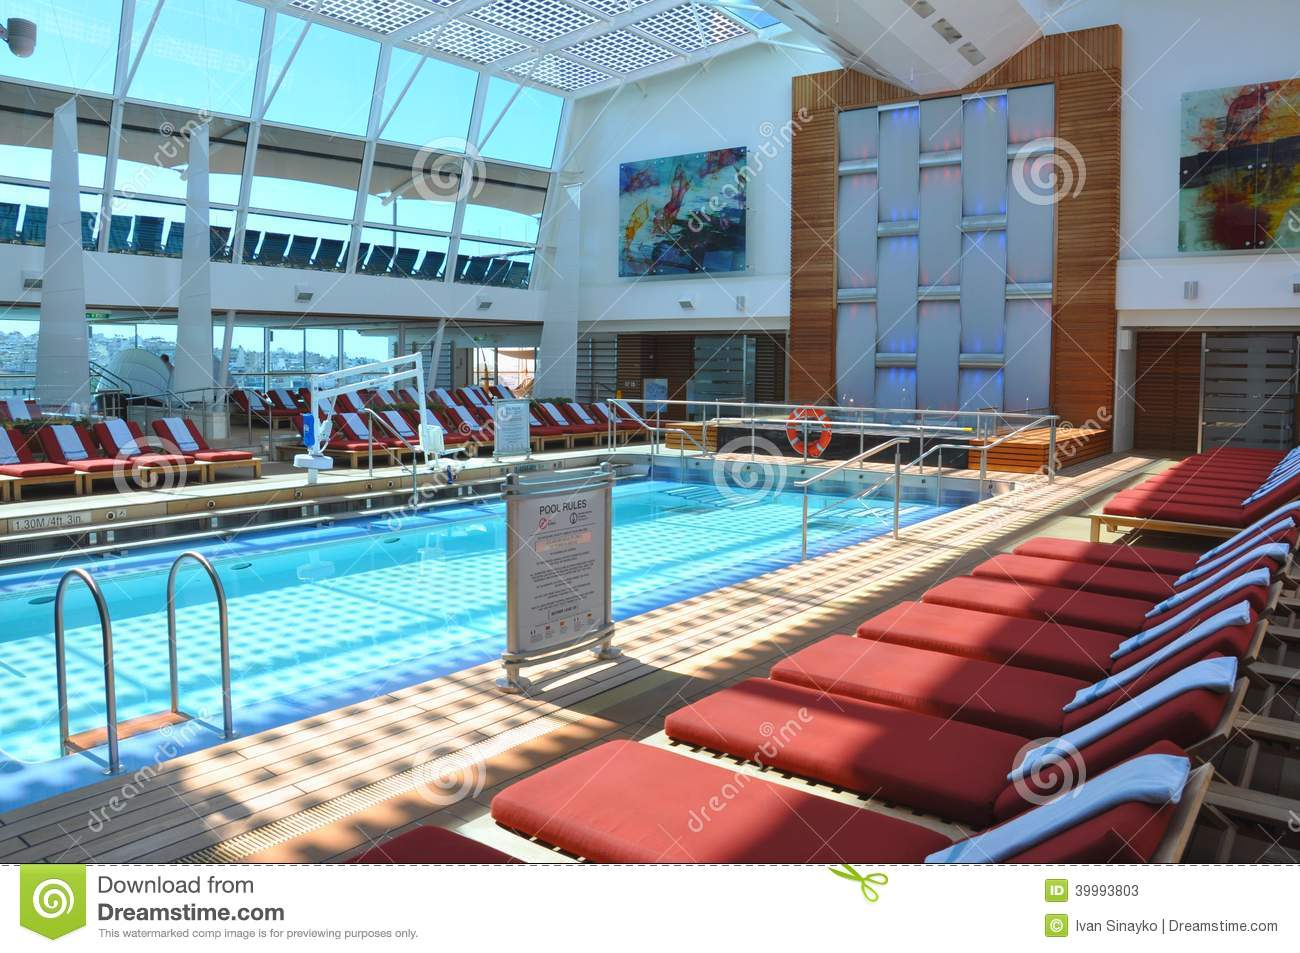 Celebrity reflection indoor pool